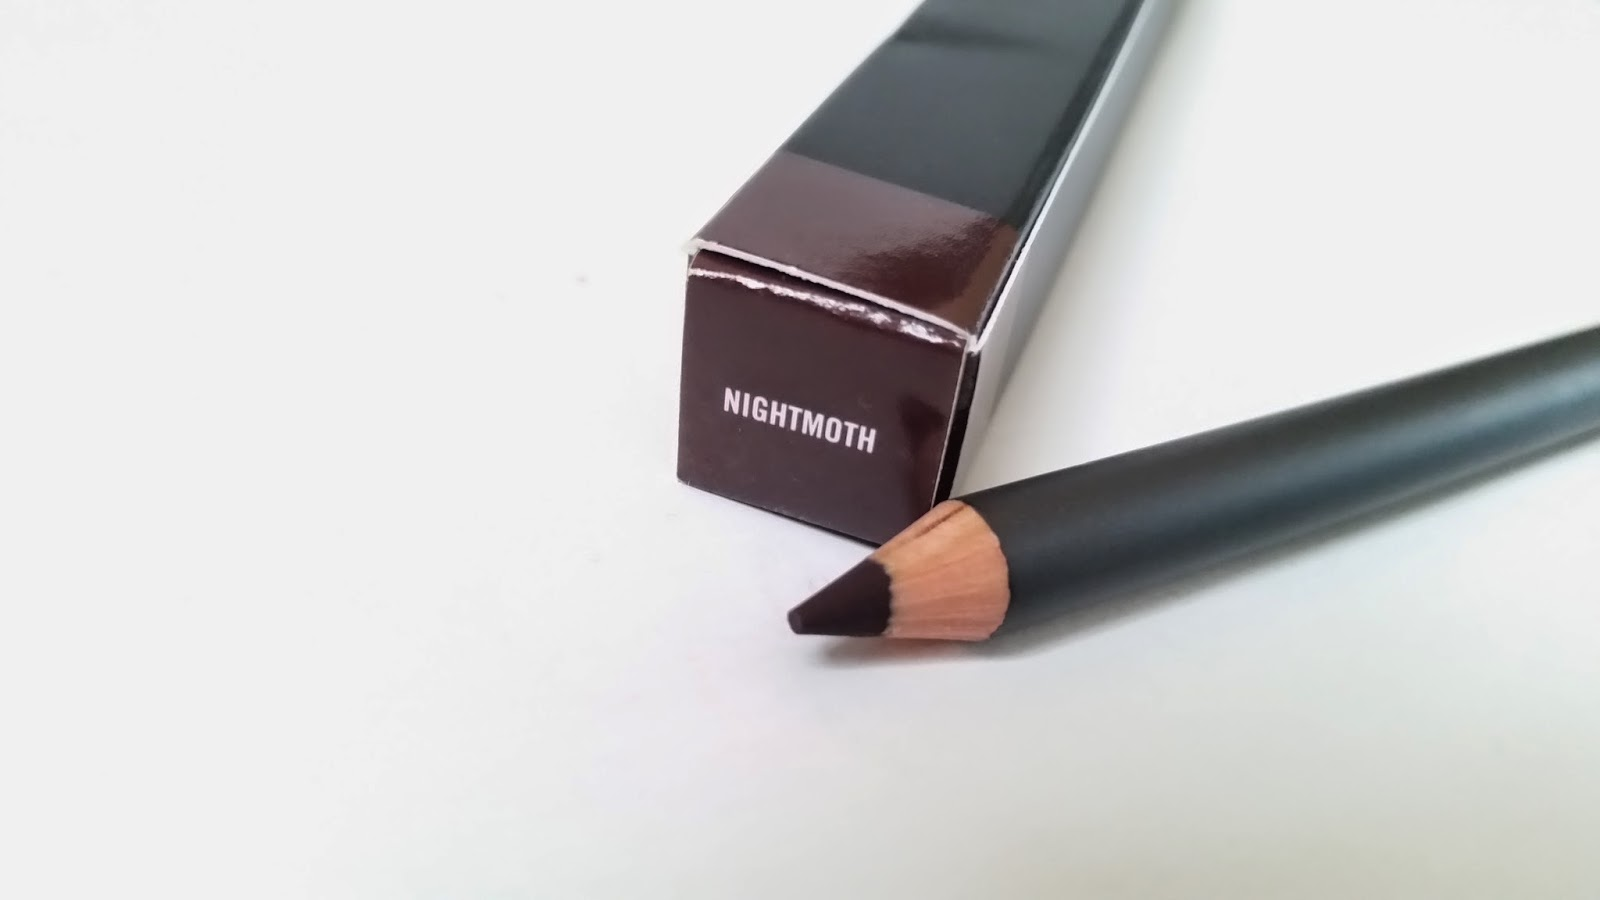 MAC nightmoth lipliner